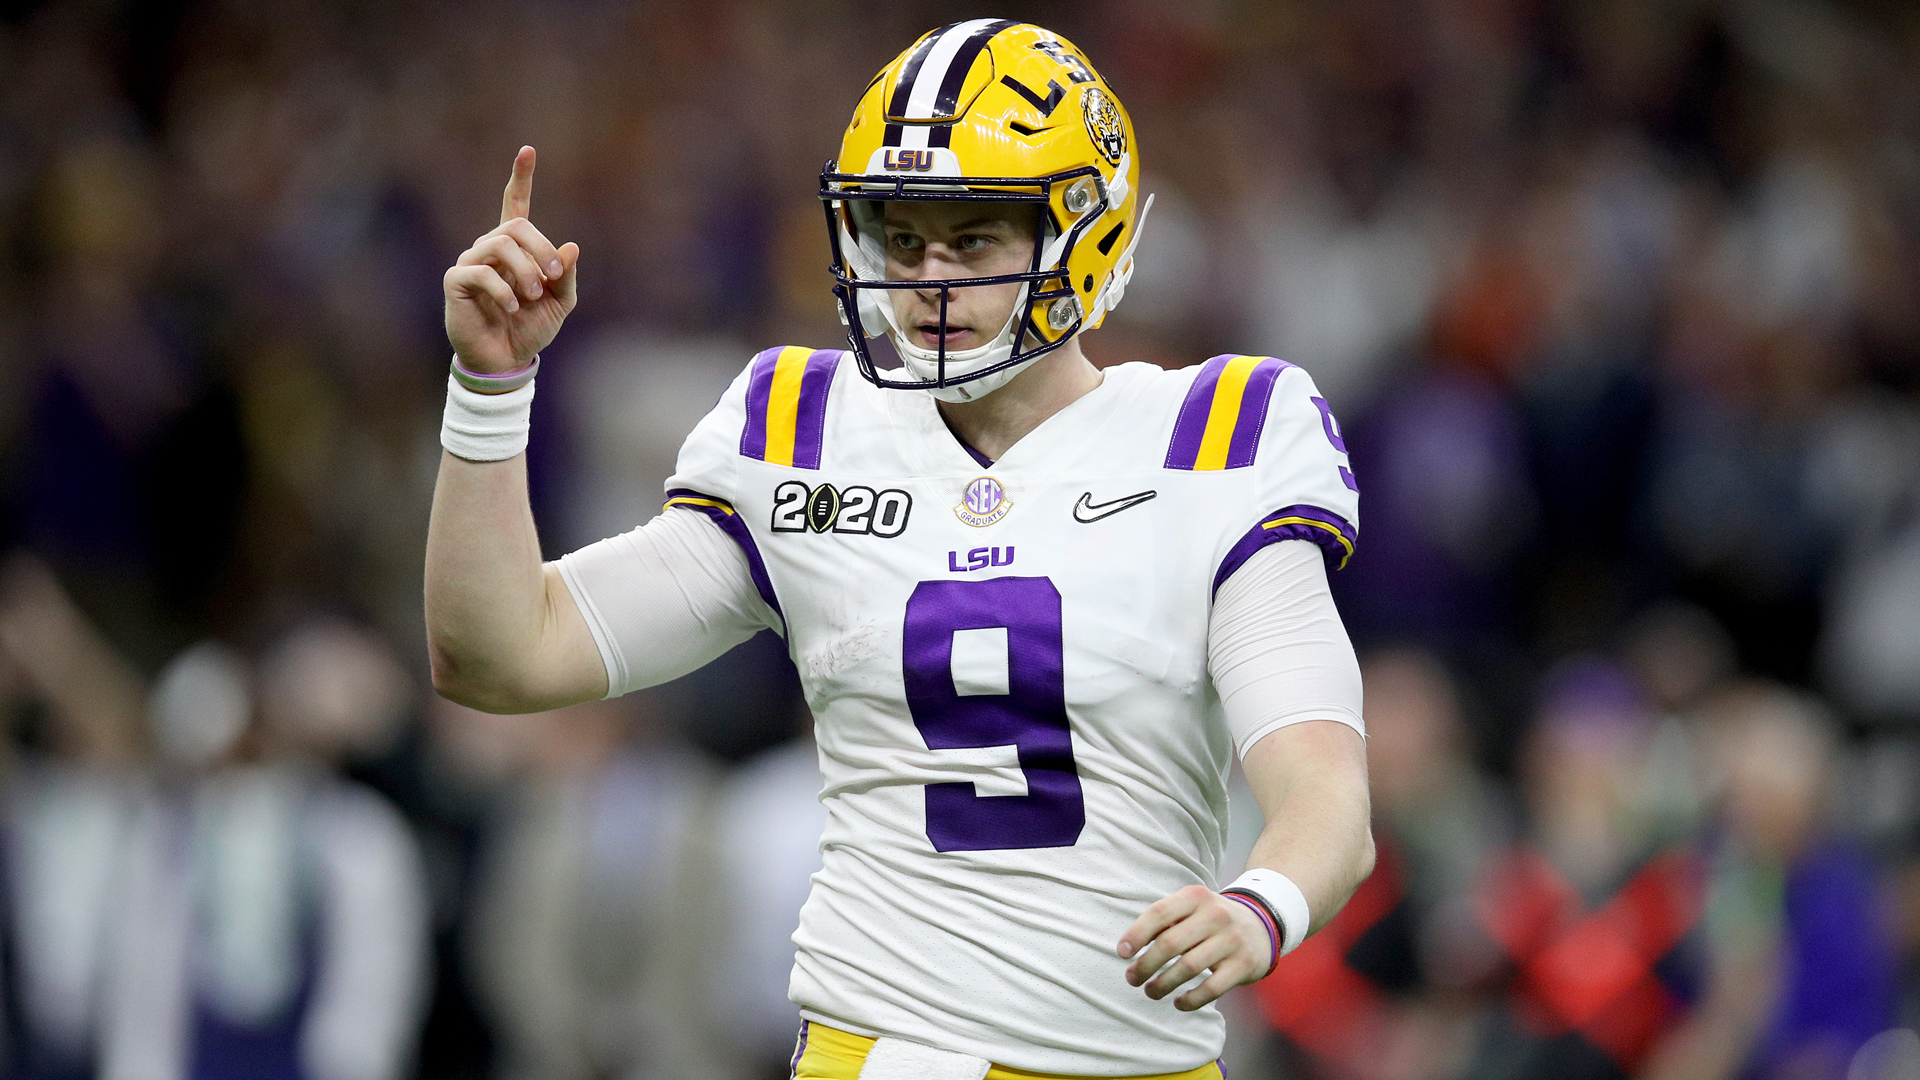 Favourite to be the first pick in the NFL Draft, Joe Burrow led the LSU Tigers to the national title.